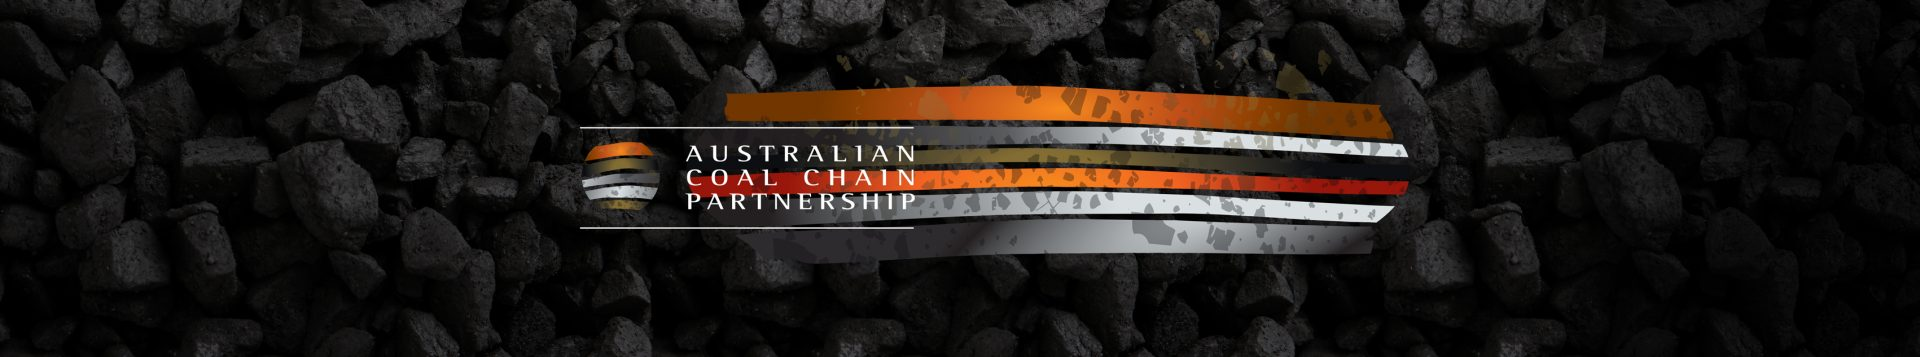 Coal Partnership banner for promotion